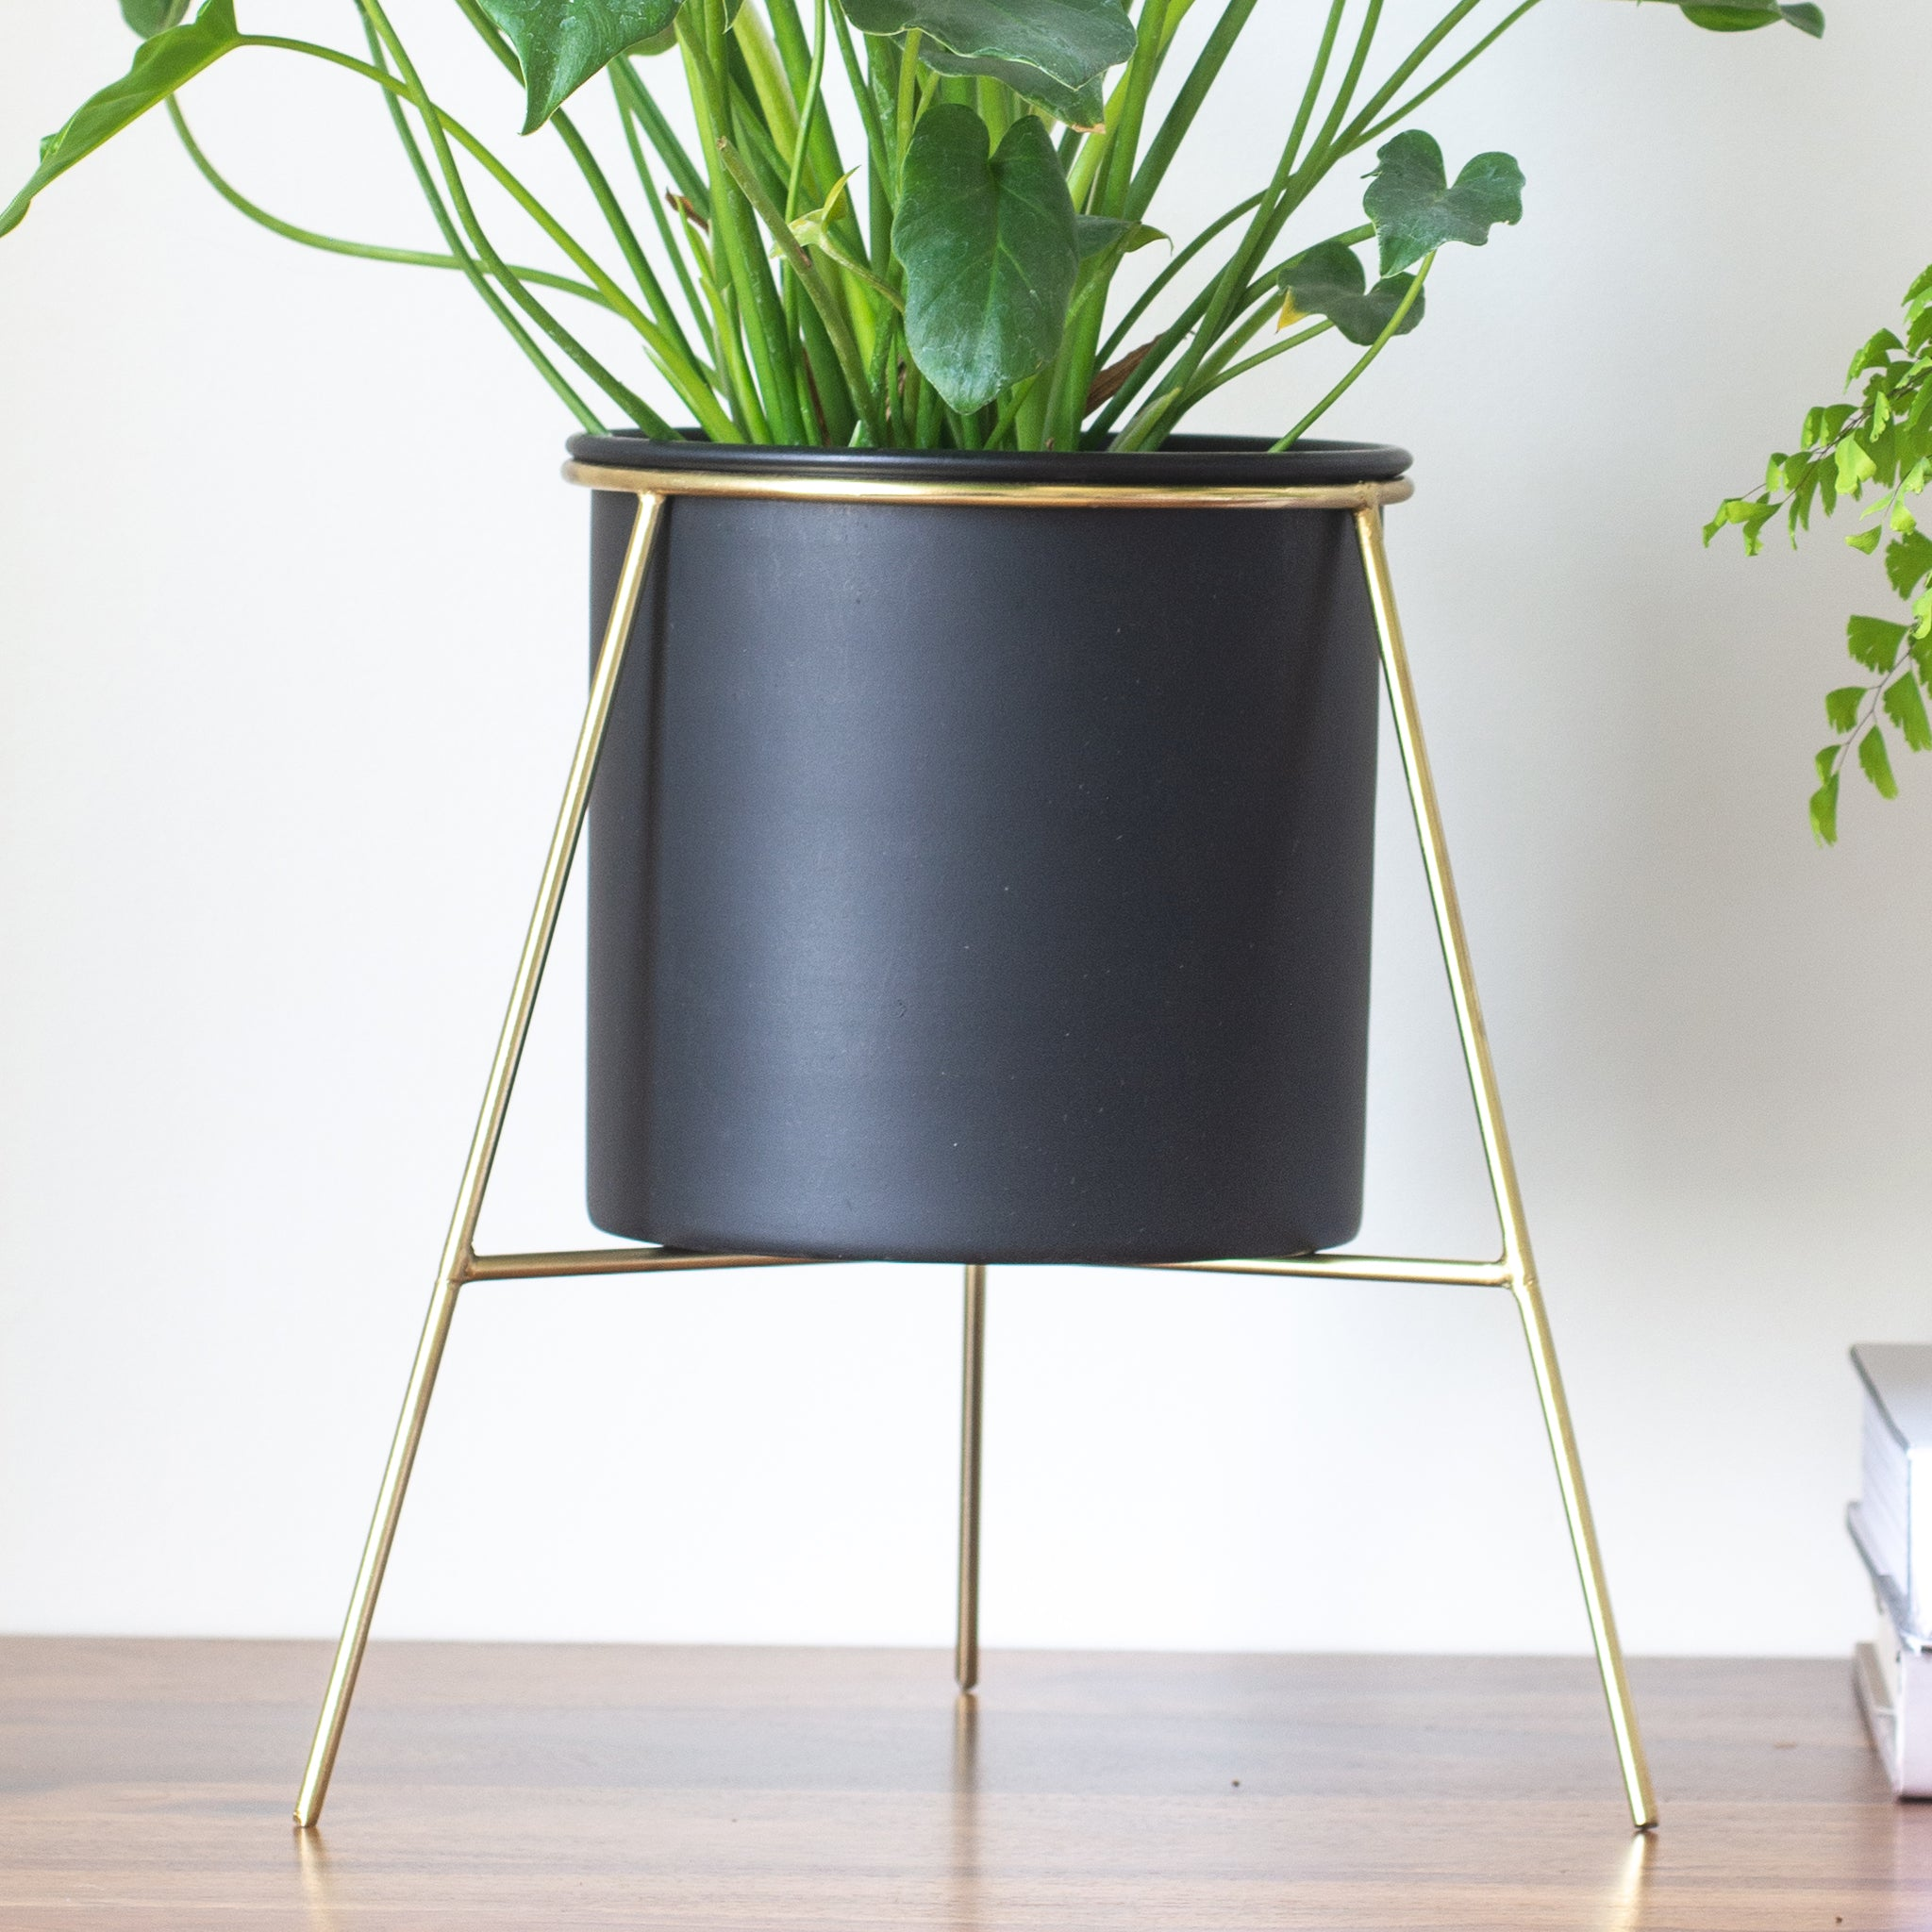 Noir black Planter with gold stand & Madenhair fern in it, place on a table top